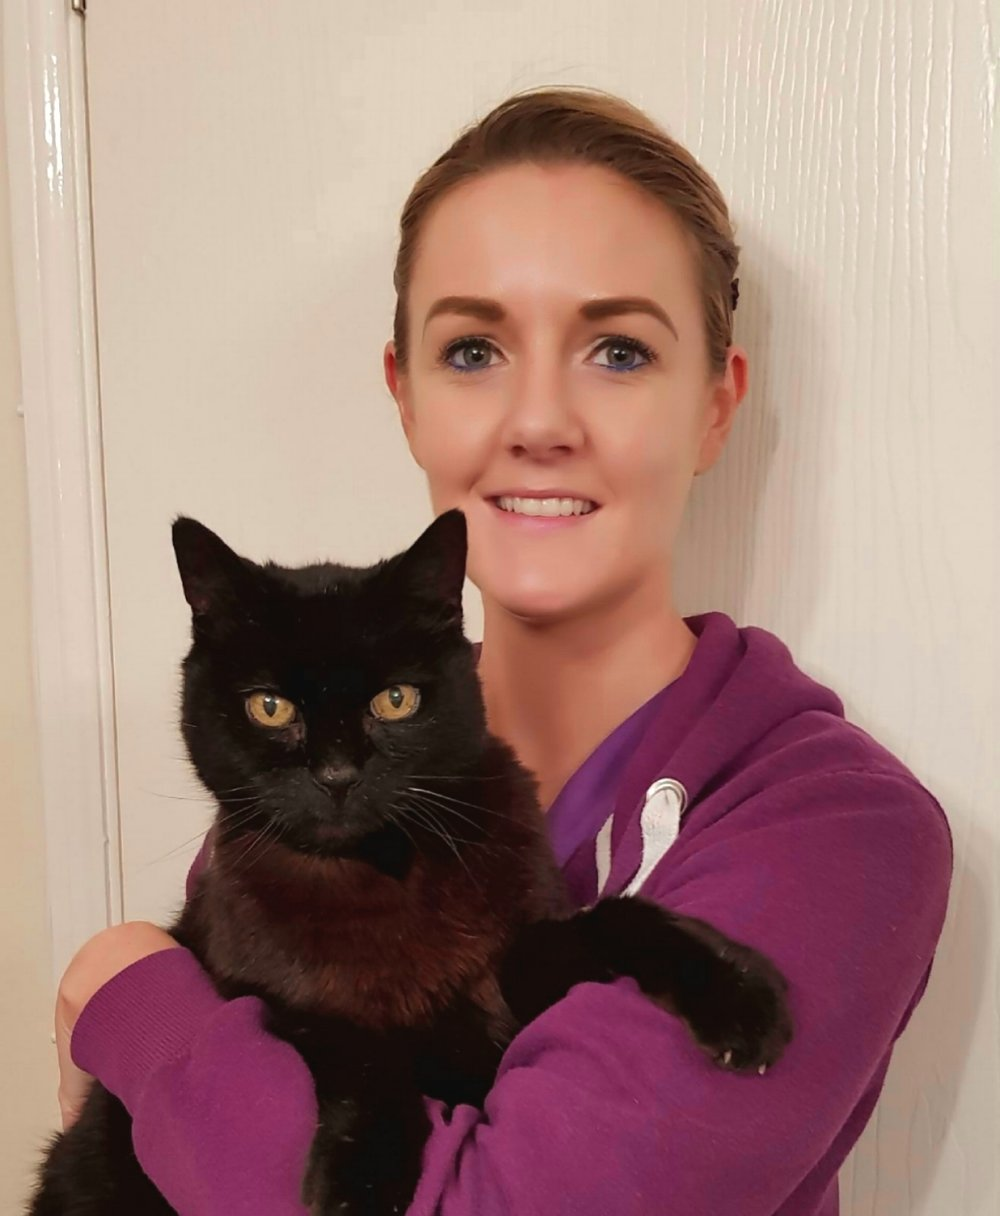 HANNAH HOLLAND  Head Nurse RVN  Hannah has worked in practice since 2006, and qualified as a veterinary nurse in 2012. Her special interests include dog training and behaviour, and geriatric patients.